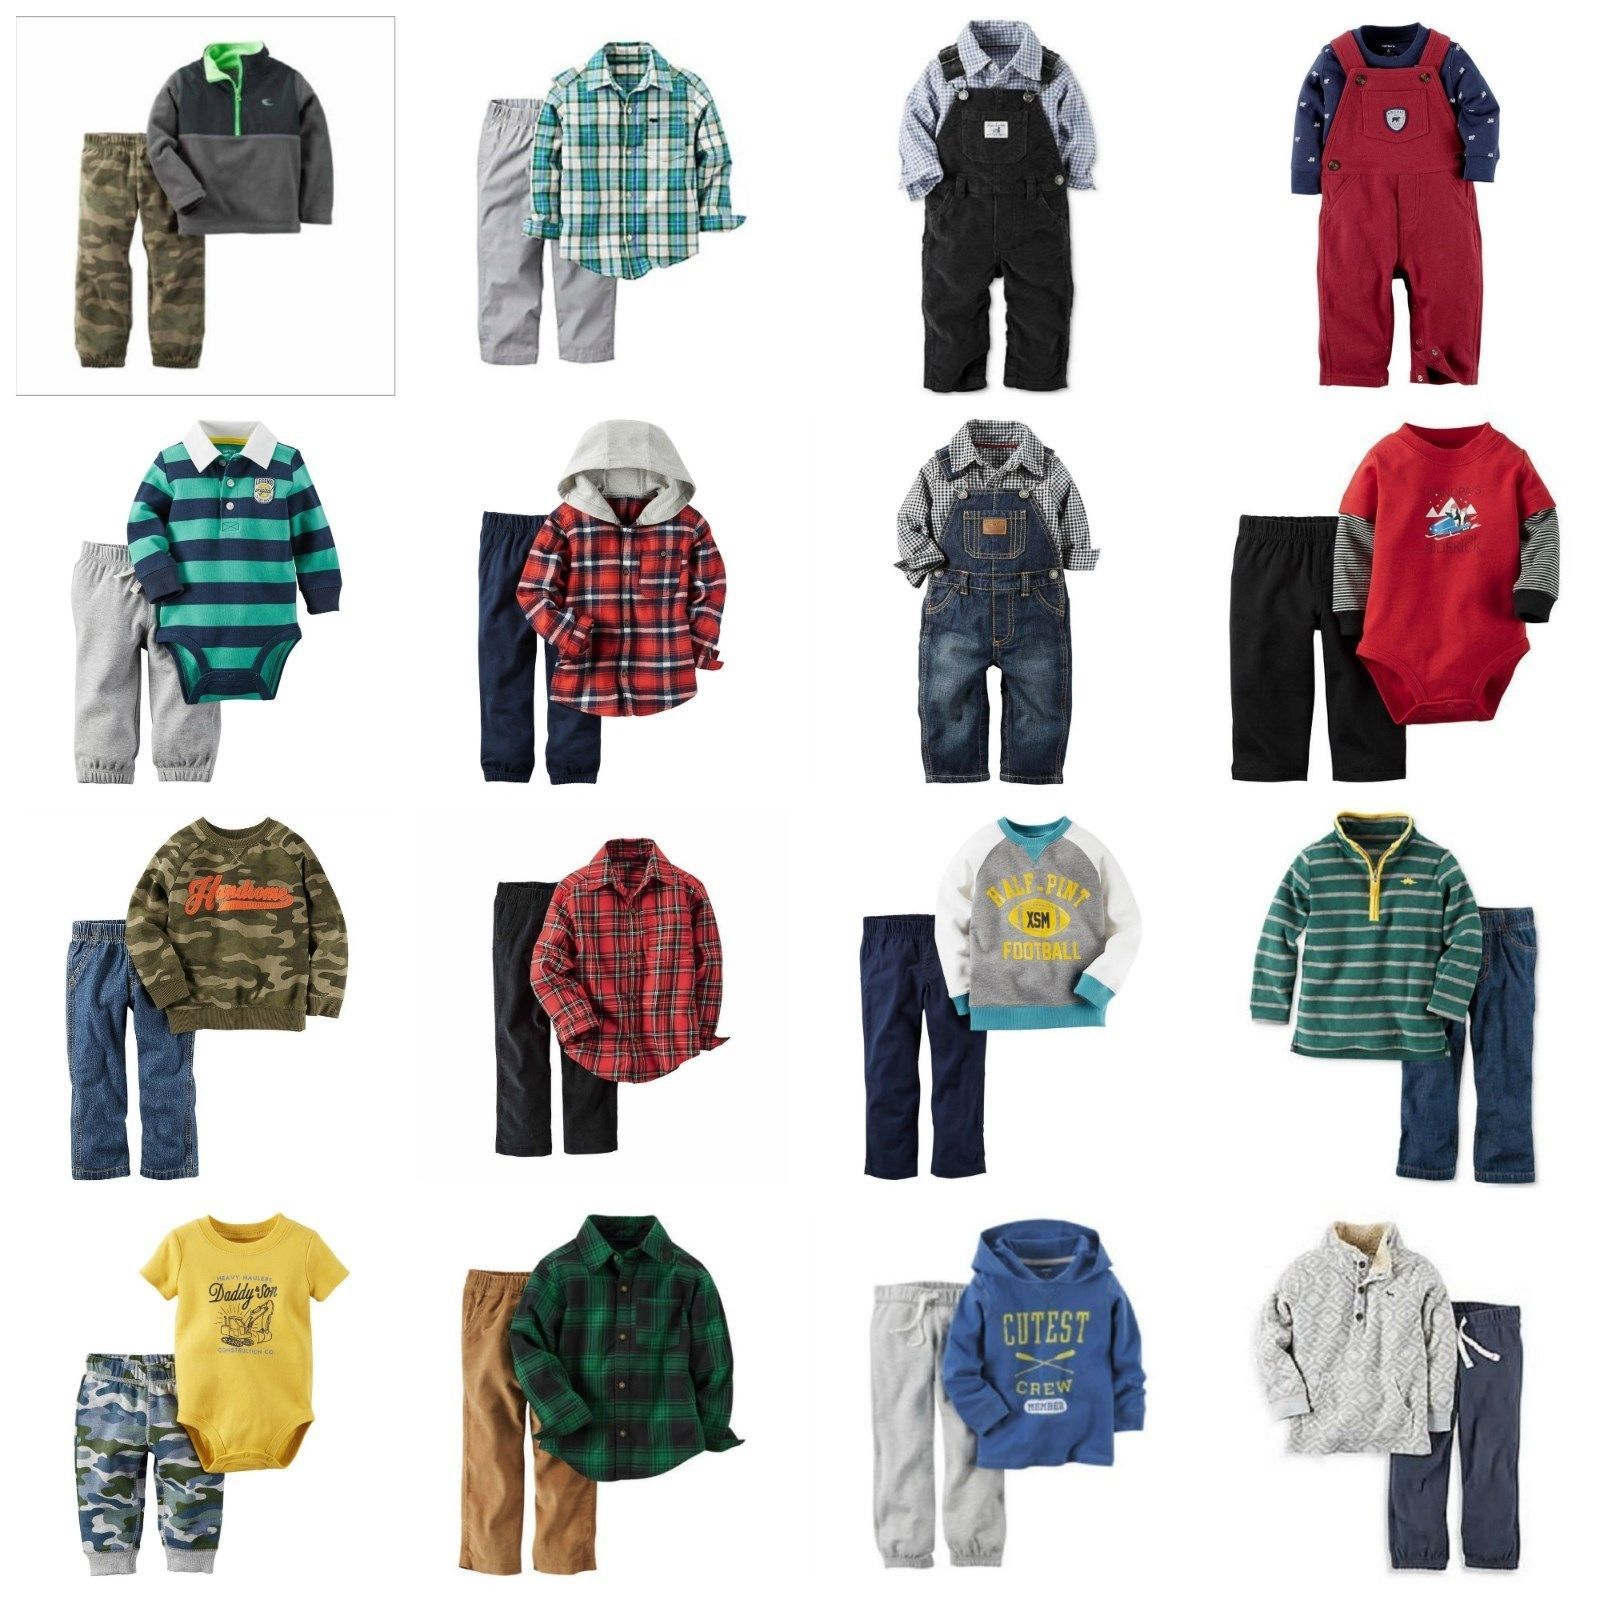 b90fd156d NWT Carter's Baby Boy 2-Pc Outfits Sets and 24 similar items